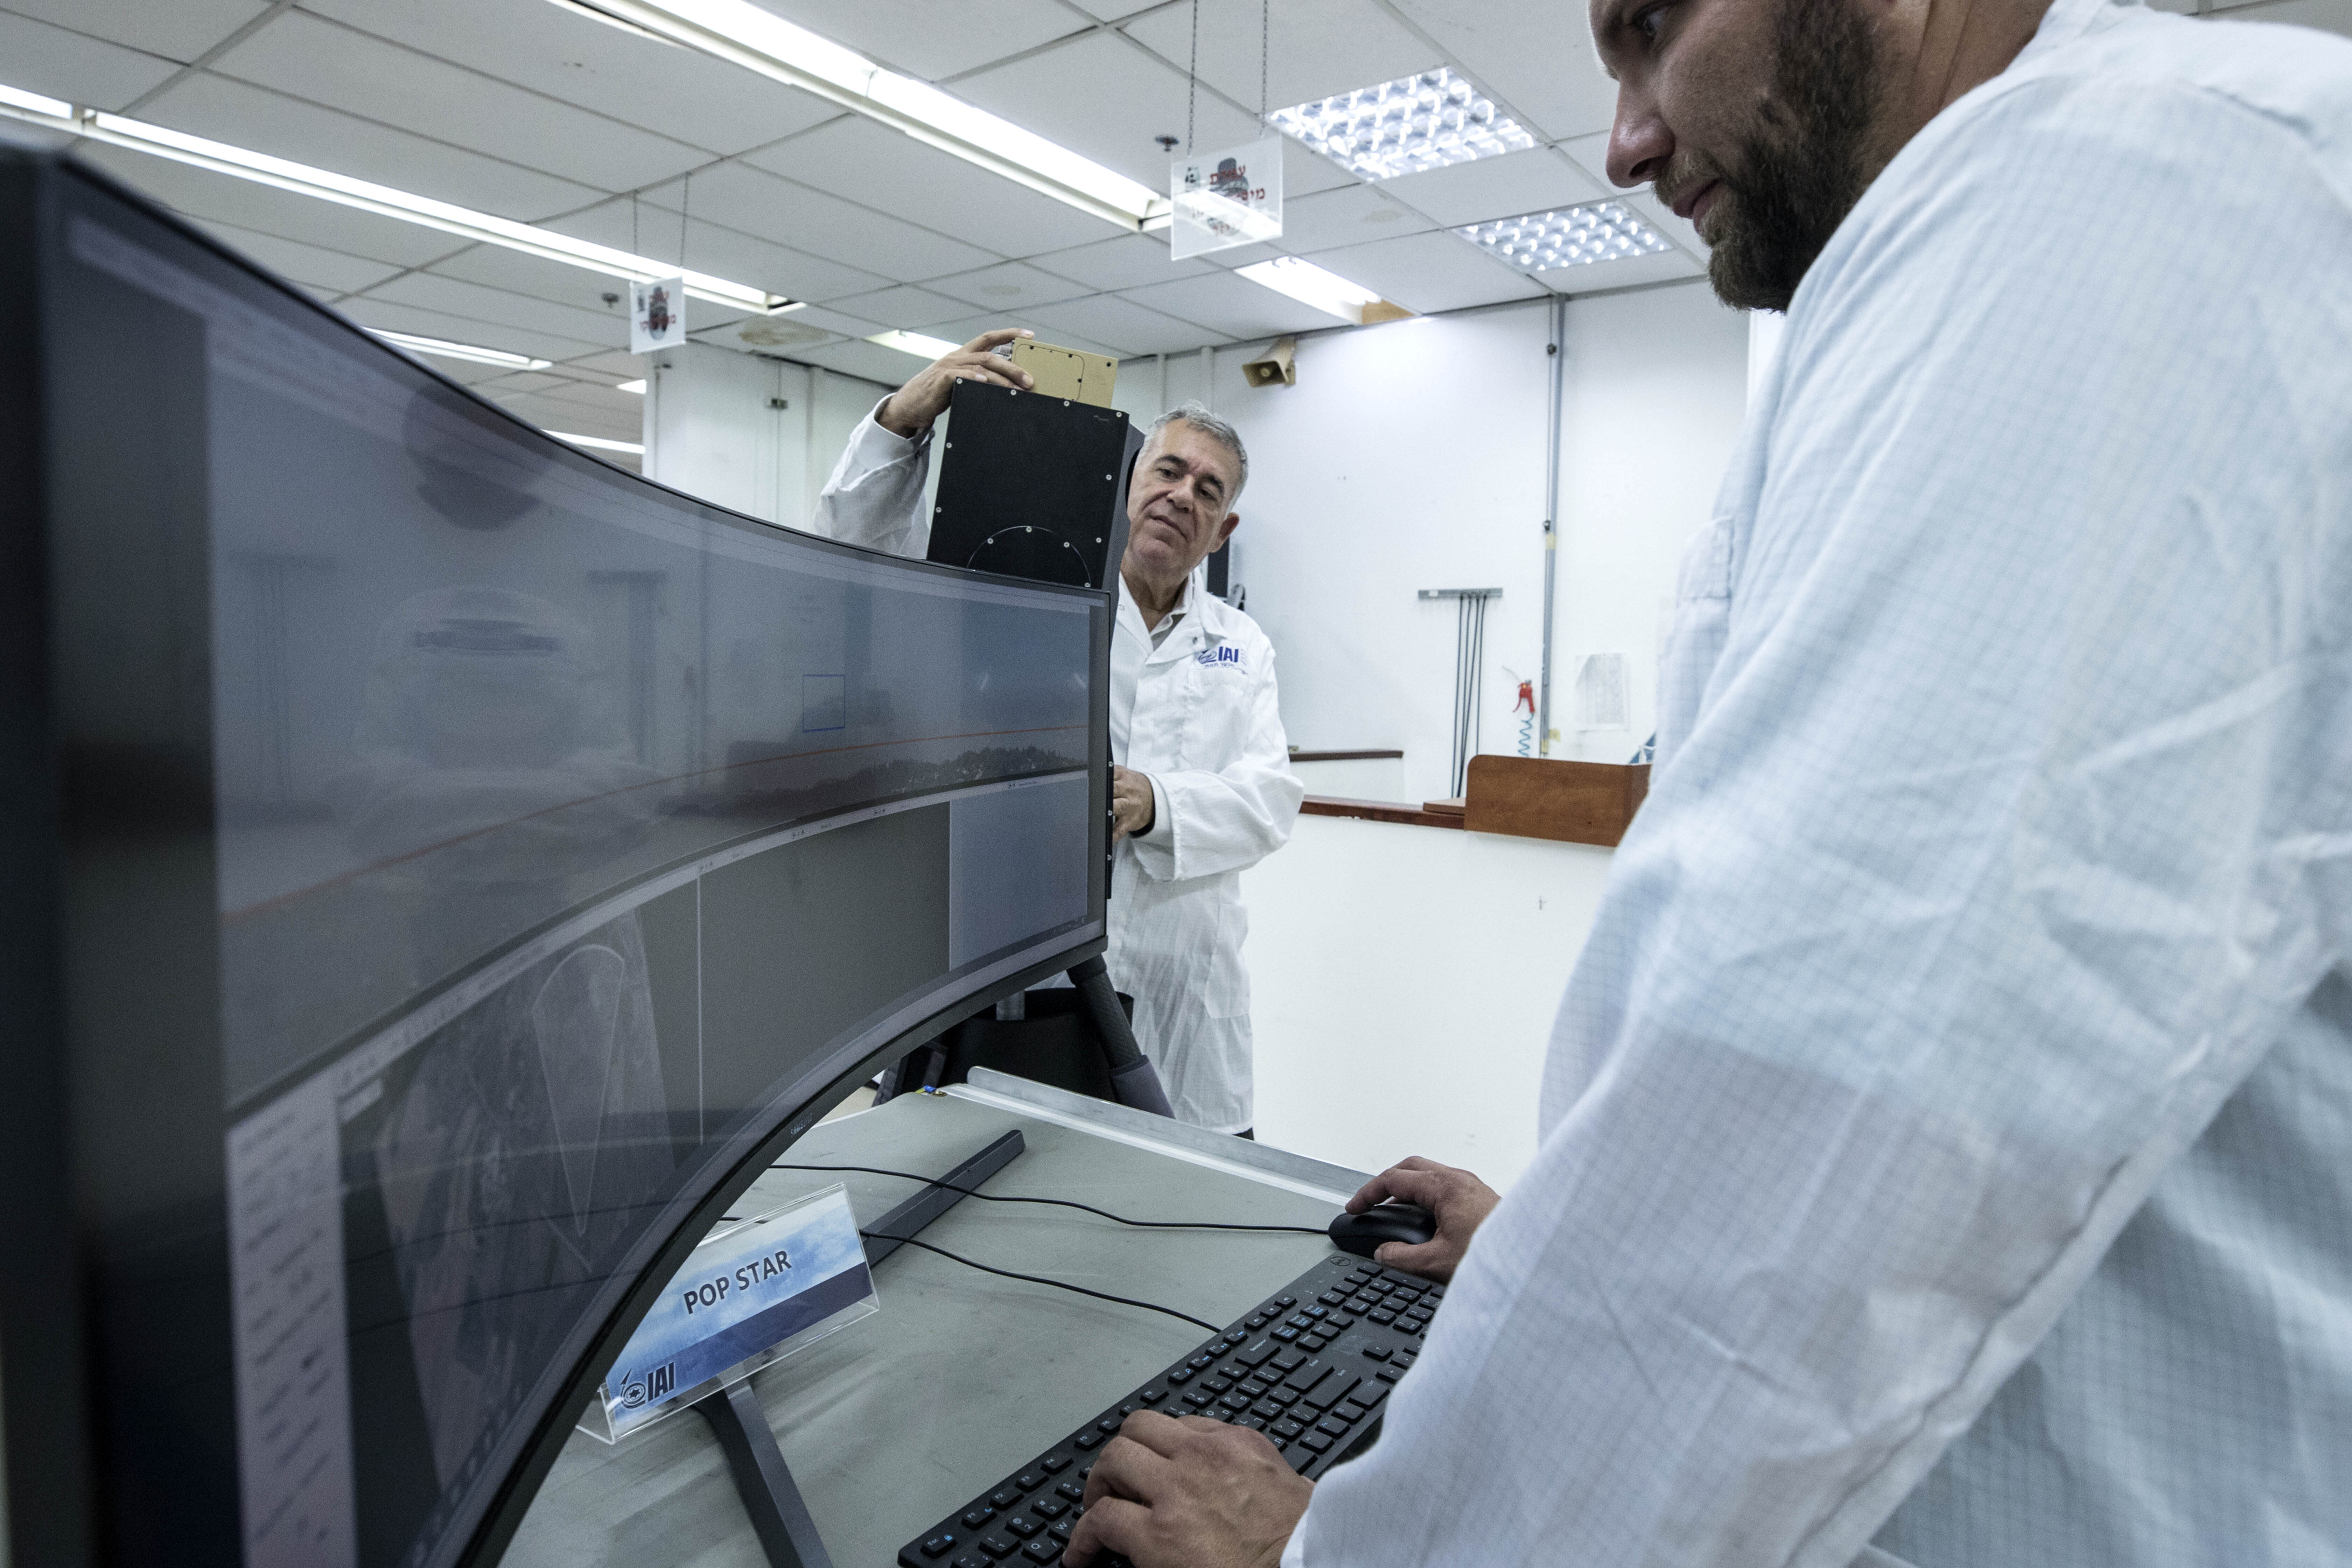 In this Monday, Sept. 9, 2019 photo, Ariel Gomez, right, and Boaz Leviy work on the Popstar system that can track and identify flying objects day or night without being detected, at Israel Aerospace Industries, in the Israeli town of Yehud near Tel Aviv. Israel has long been a dominant player in the military drone export business, developing small attack aircraft as well as long-range spy planes. Now, Israeli firms are at the forefront of a global industry developing means to protect against the drone threat. (AP Photo/Tsafrir Abayov)